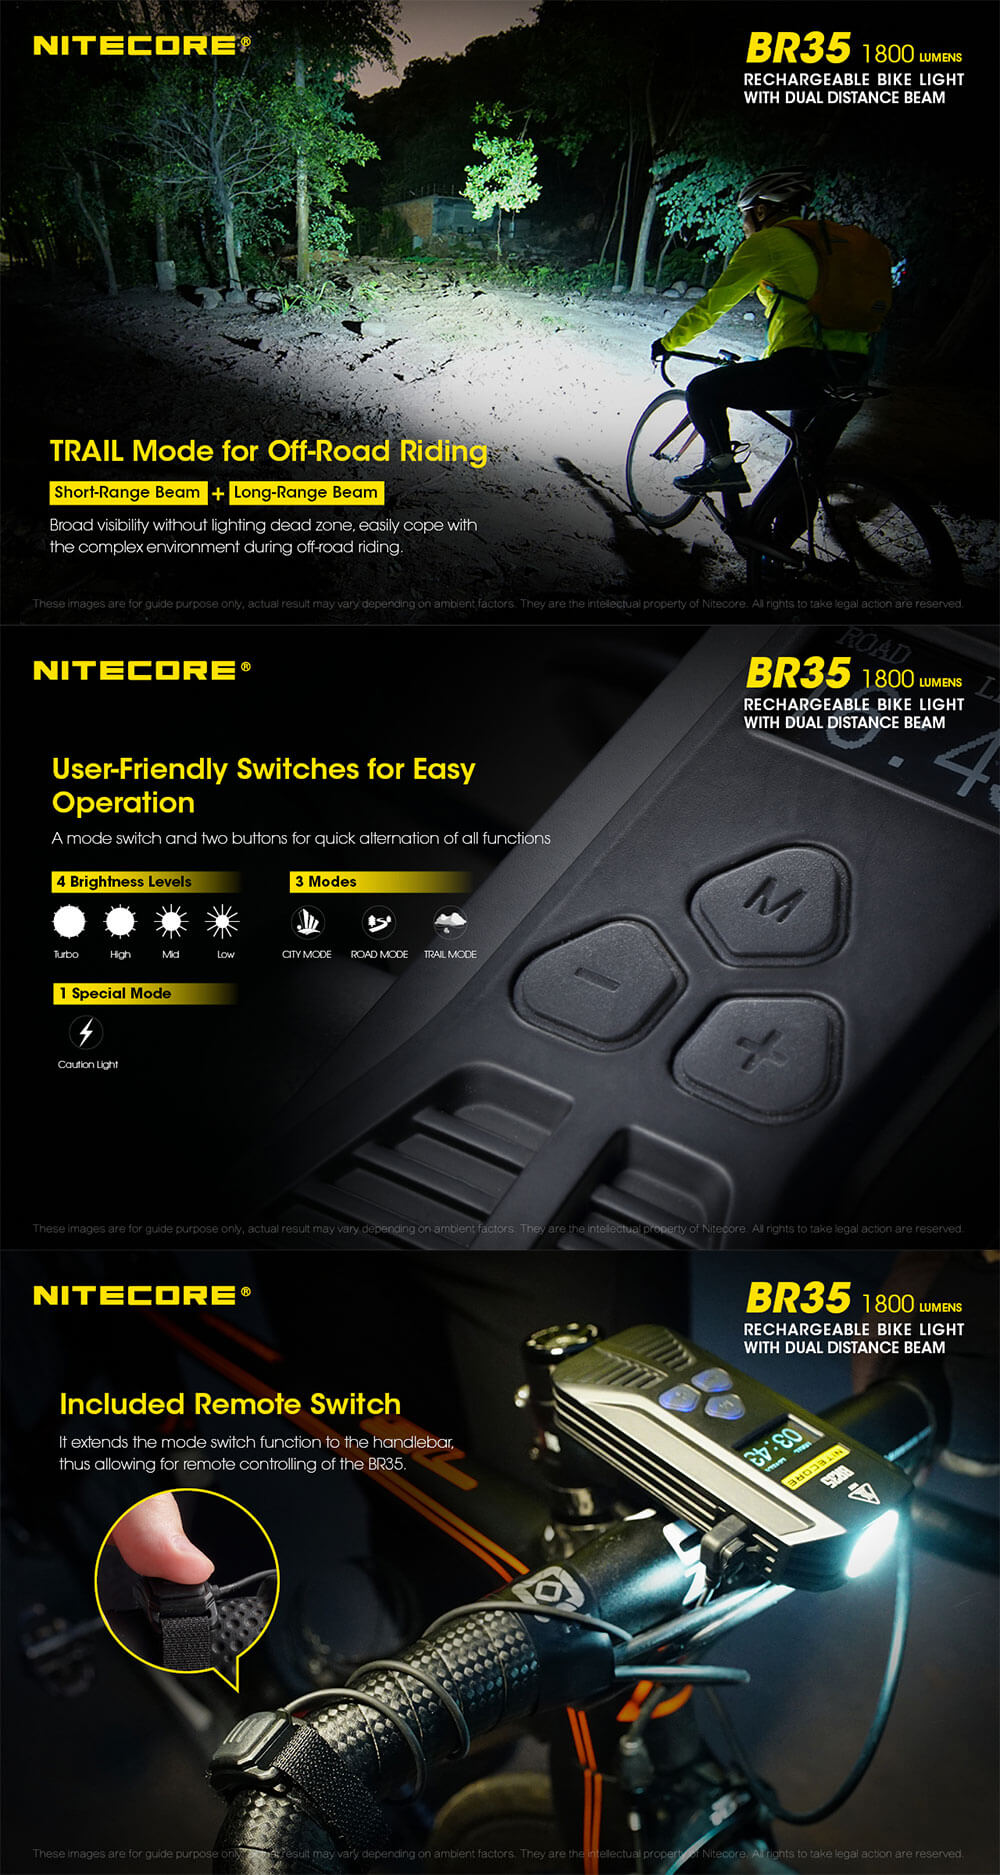 new nitecore bike light